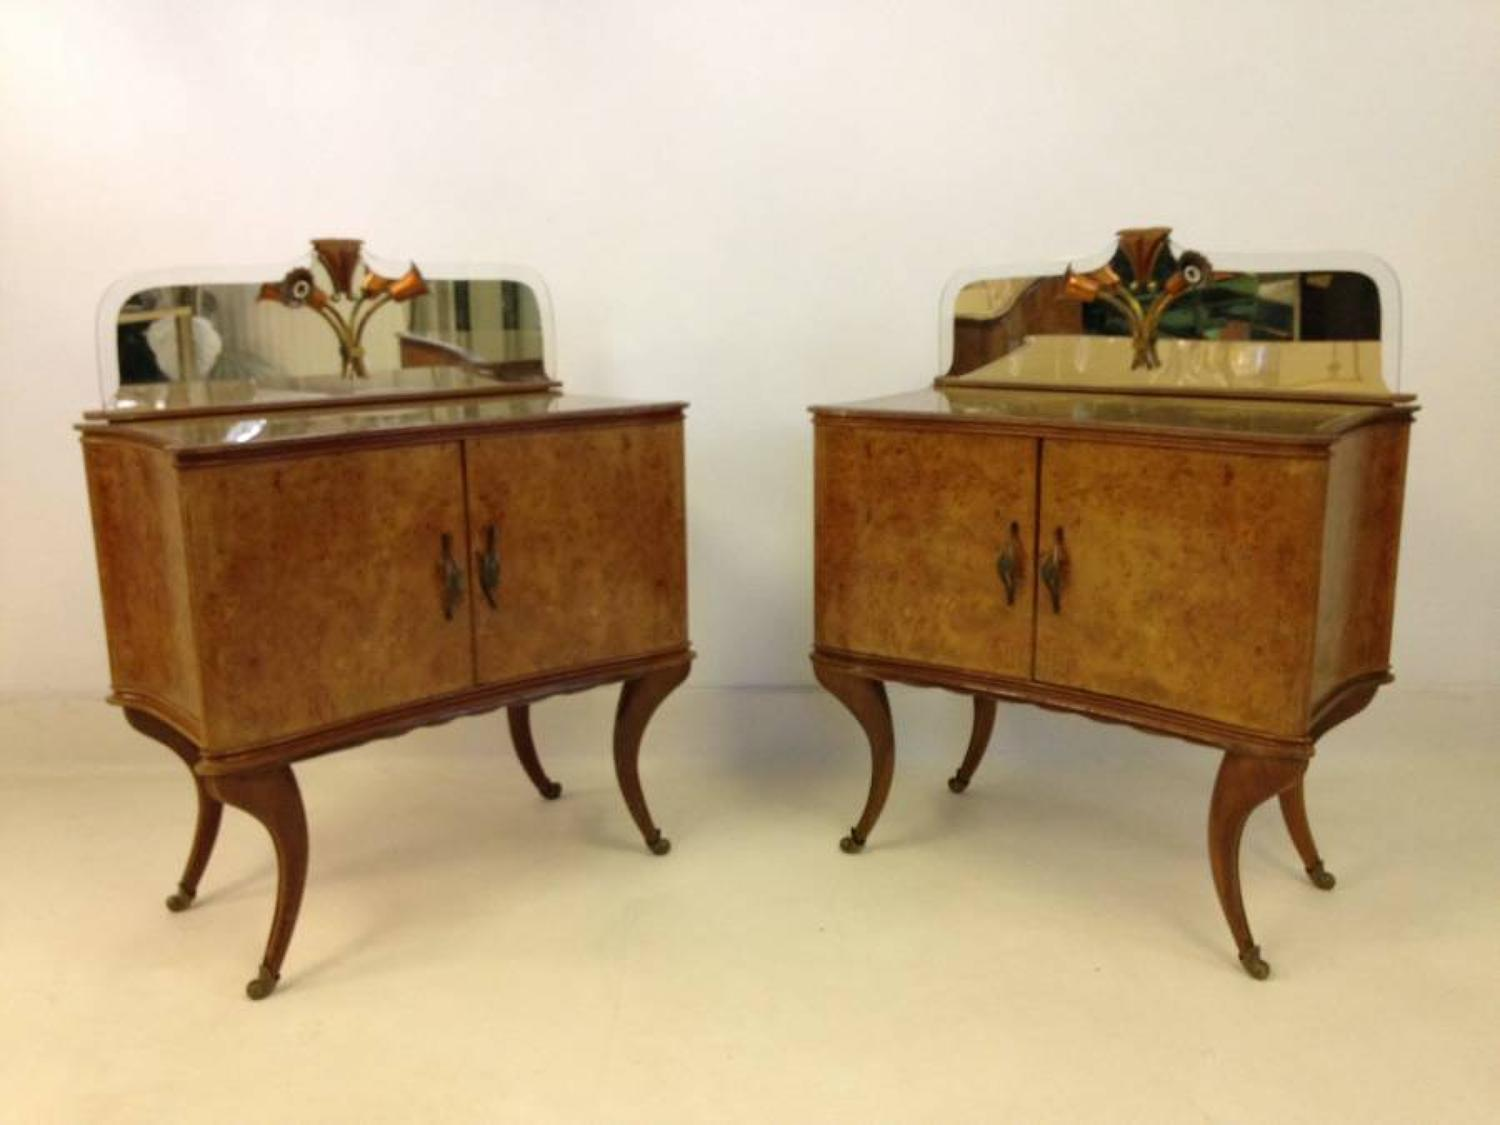 A pair of Italian bedside cabinets